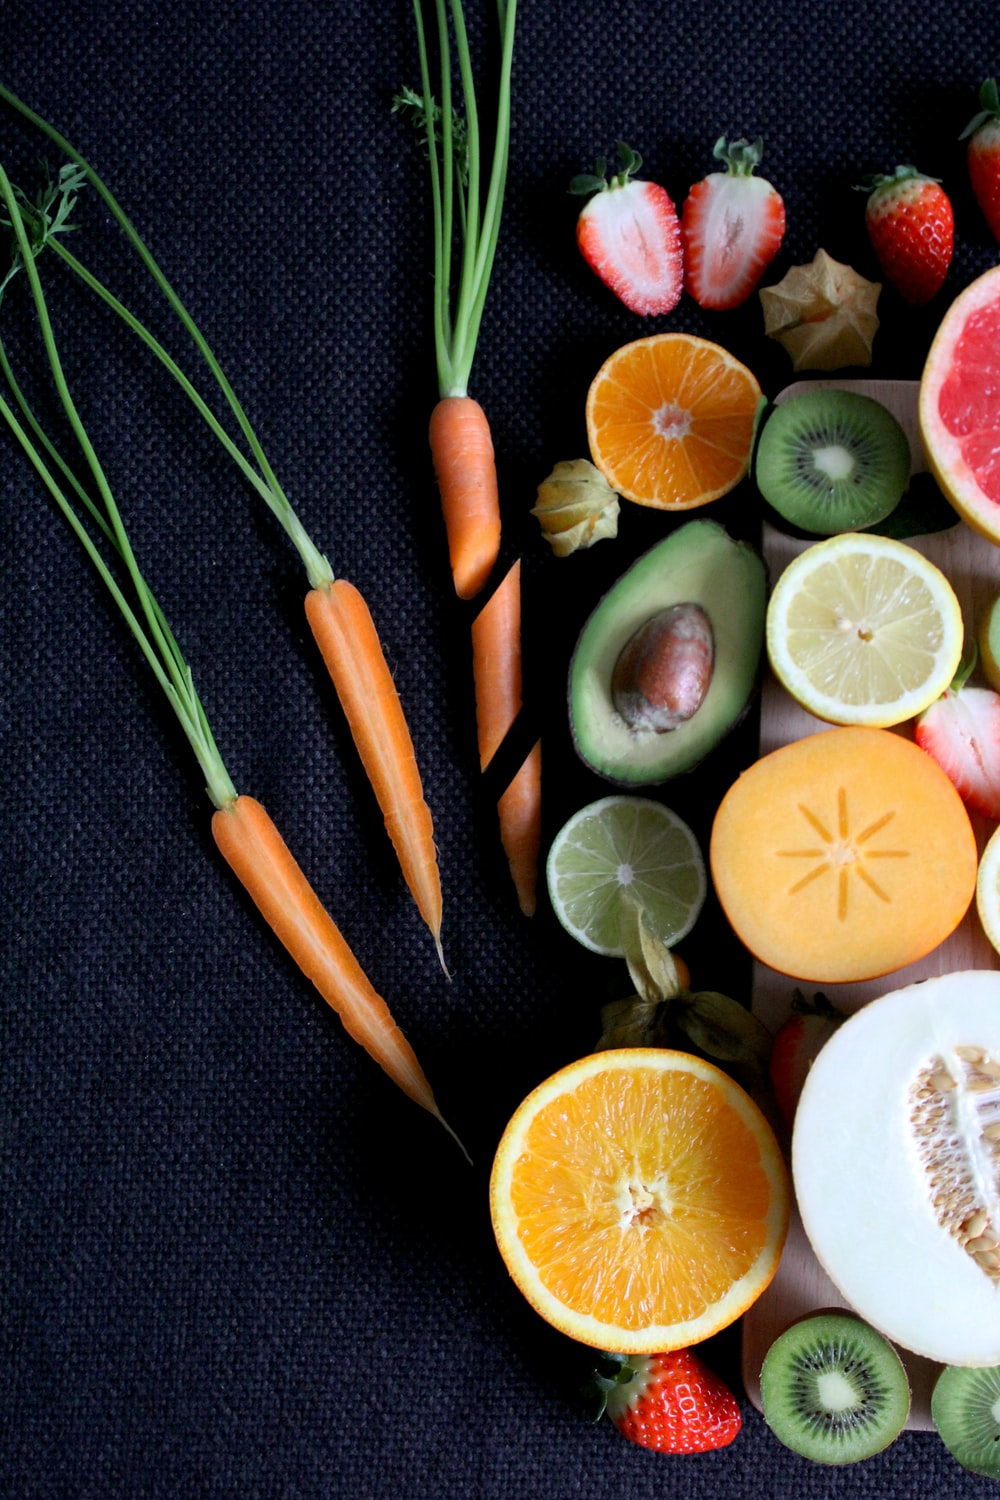 sliced vegetable and fruits on board